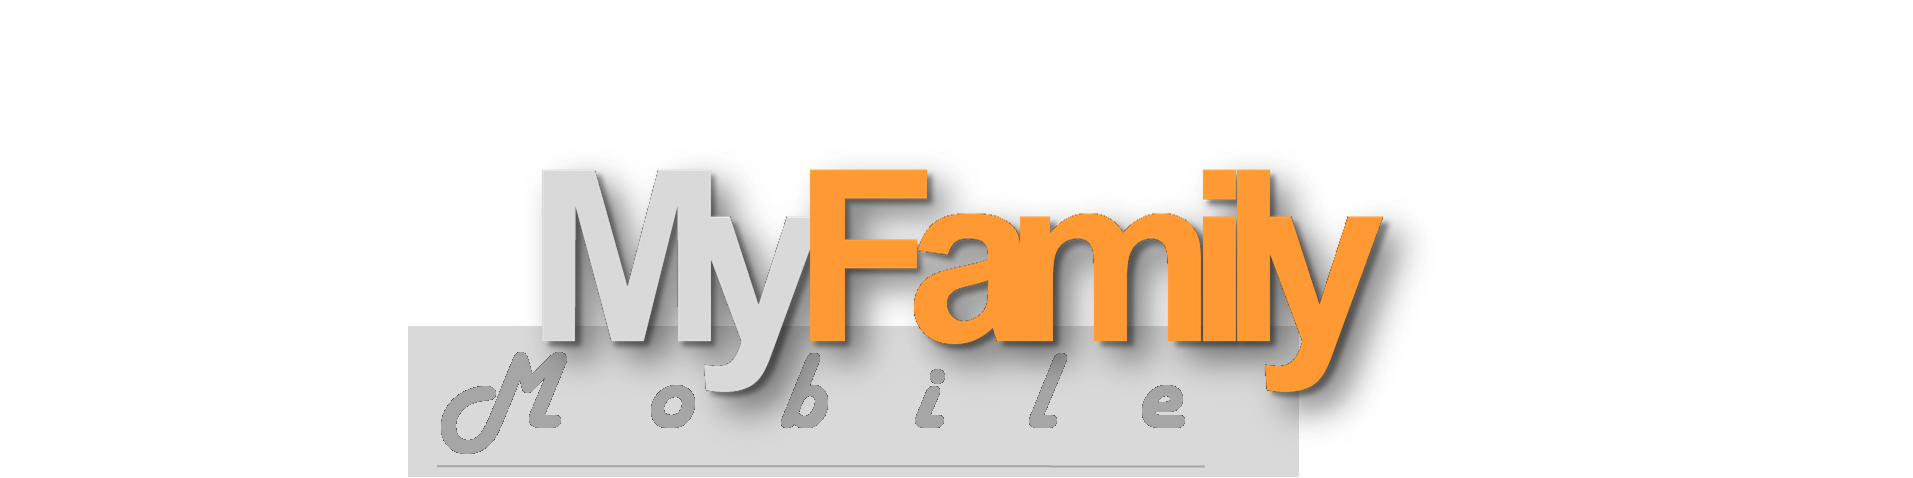 MyFamily Mobile (no white background).png